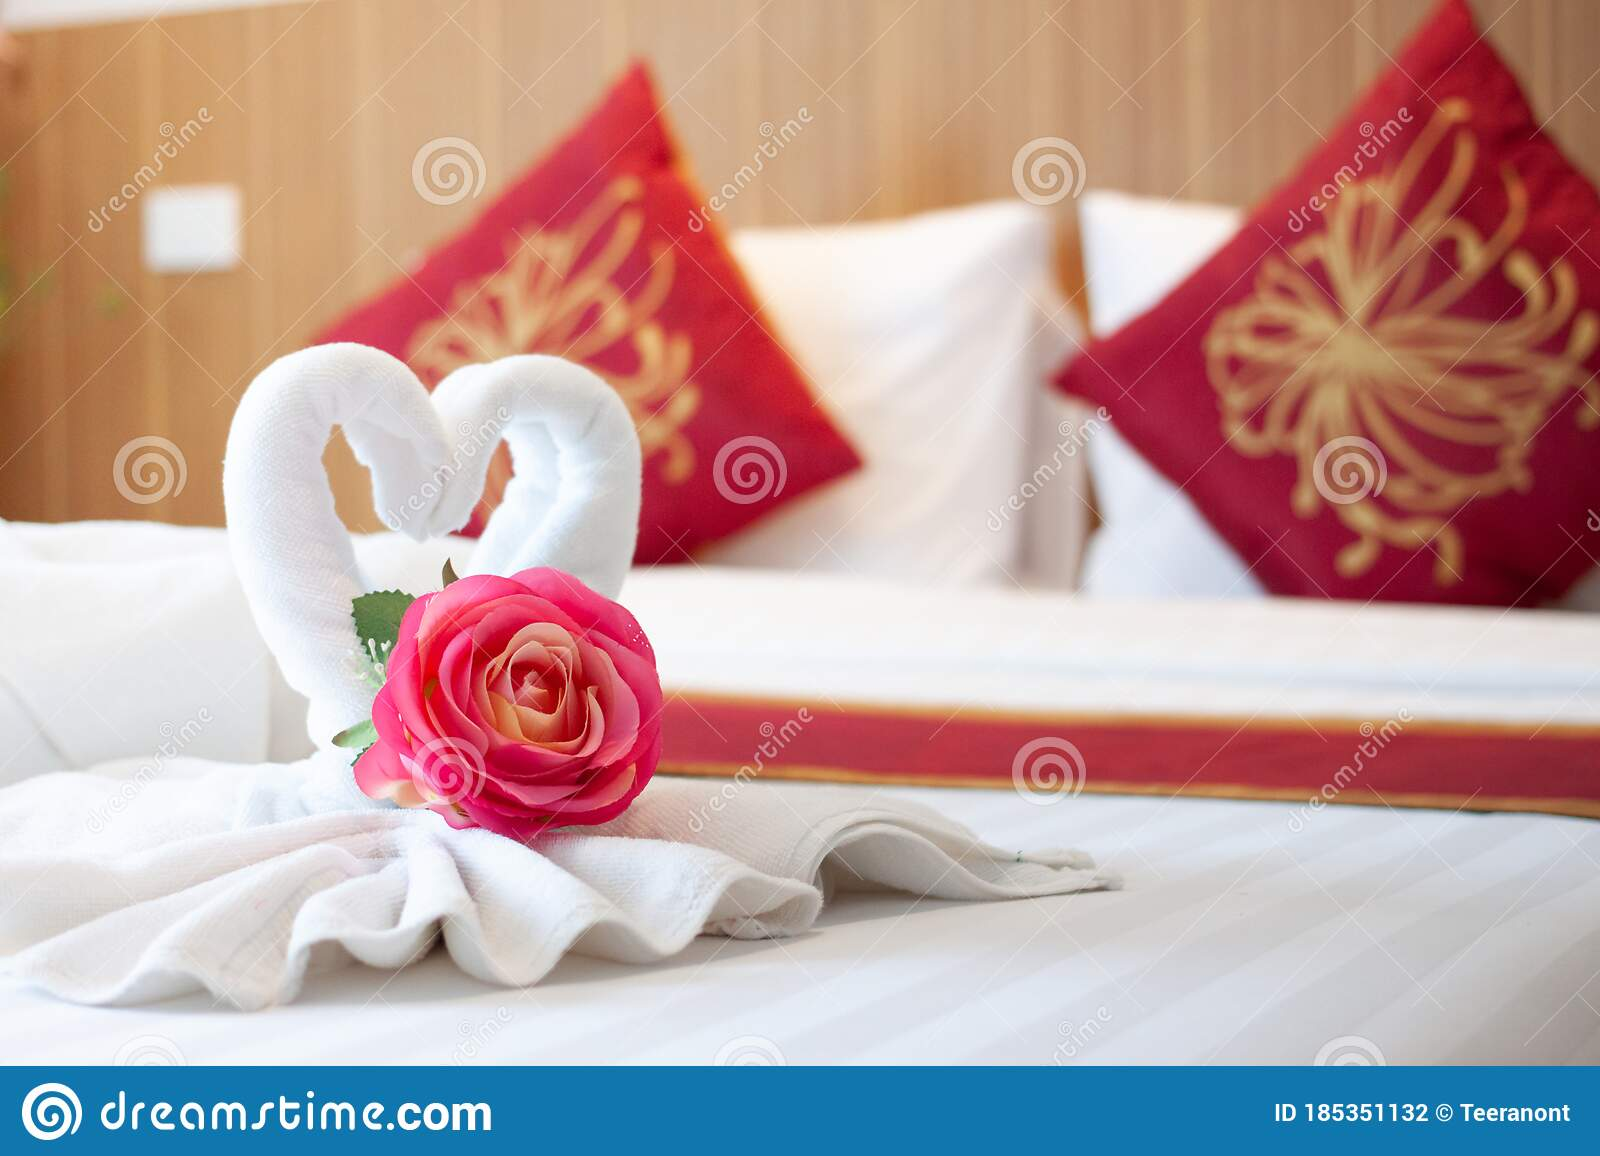 Towels Folded In Bird Shape With Pink Flowers On The White Bed In The Bedroom With Wood Headboard And Red Chinese Style Pillows Stock Photo Image Of Indoors Apartment 185351132